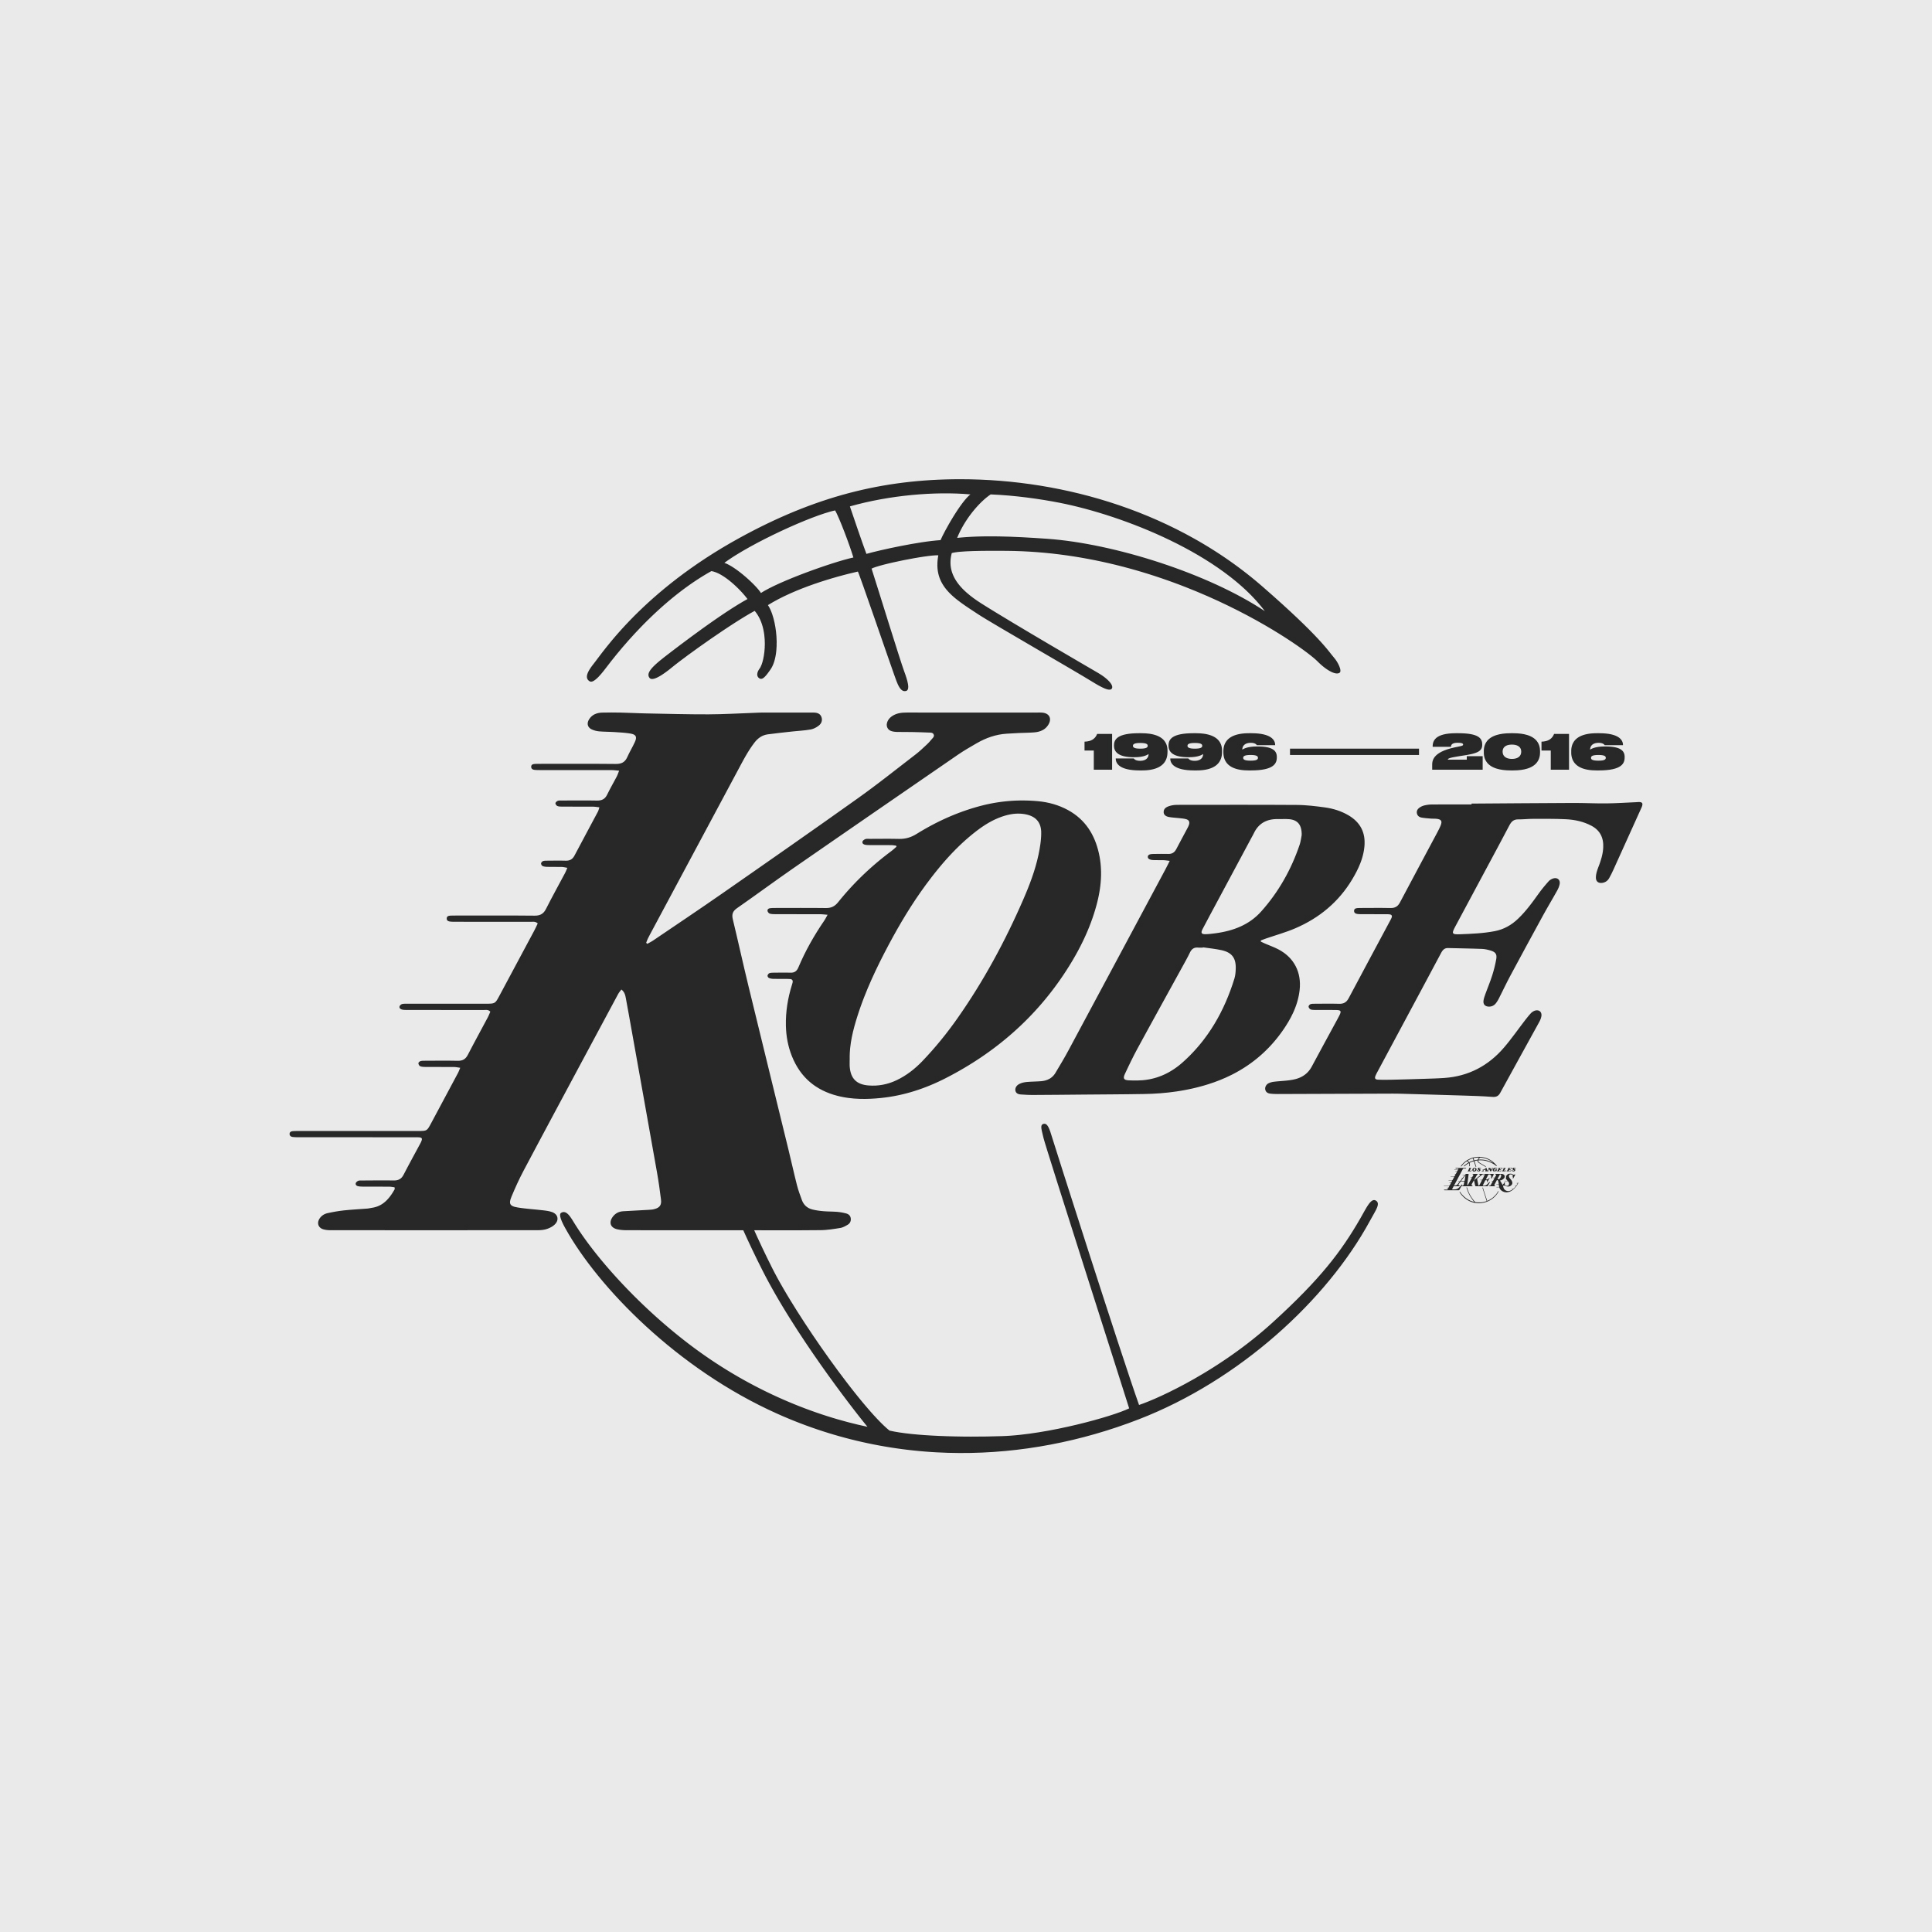 A flip on the Los Angeles Lakers logo. This mark was a part of a collection to honor Kobe Bryant's retirement. This is monumental because he was able to retire both numbers that he wore as a Laker. (8 & 24) This mark features the years that he played in the NBA and riffs off the iconic typography that the Lakers are known for.